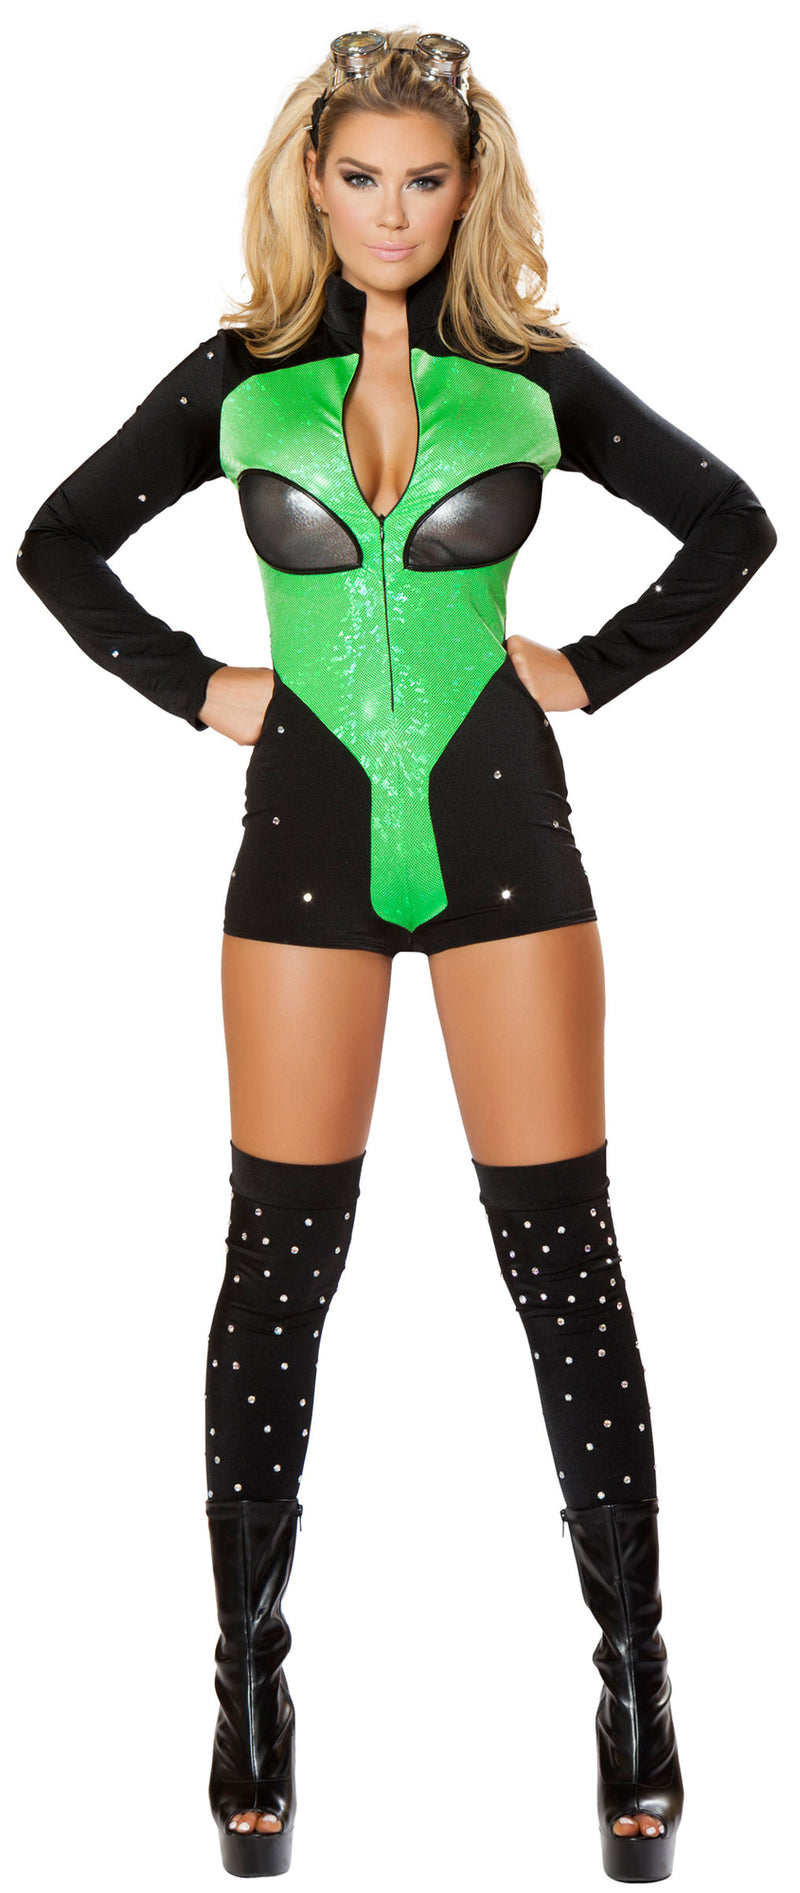 RM-4741 Out of this World Hottie costume front